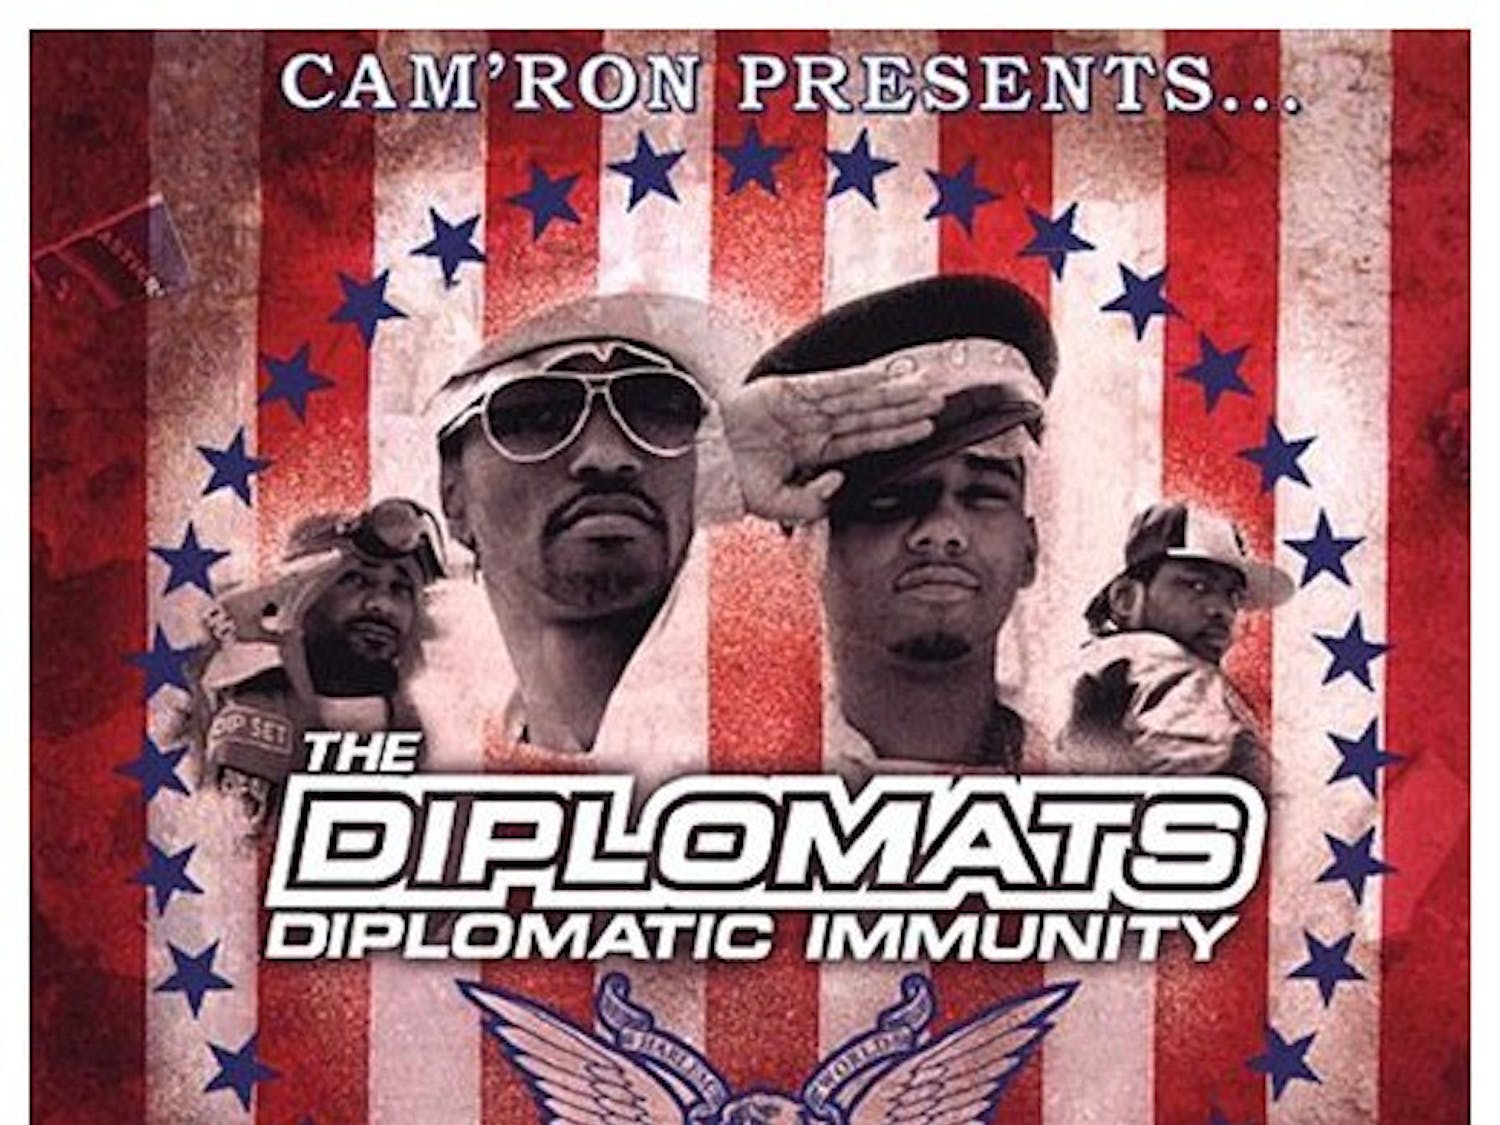 """The Diplomats' """"Diplomatic Immunity"""" features hard-knocking beats and fresh, witty bars. The Harlem group's album should be a delight to any rap fan looking for a political mix this week."""